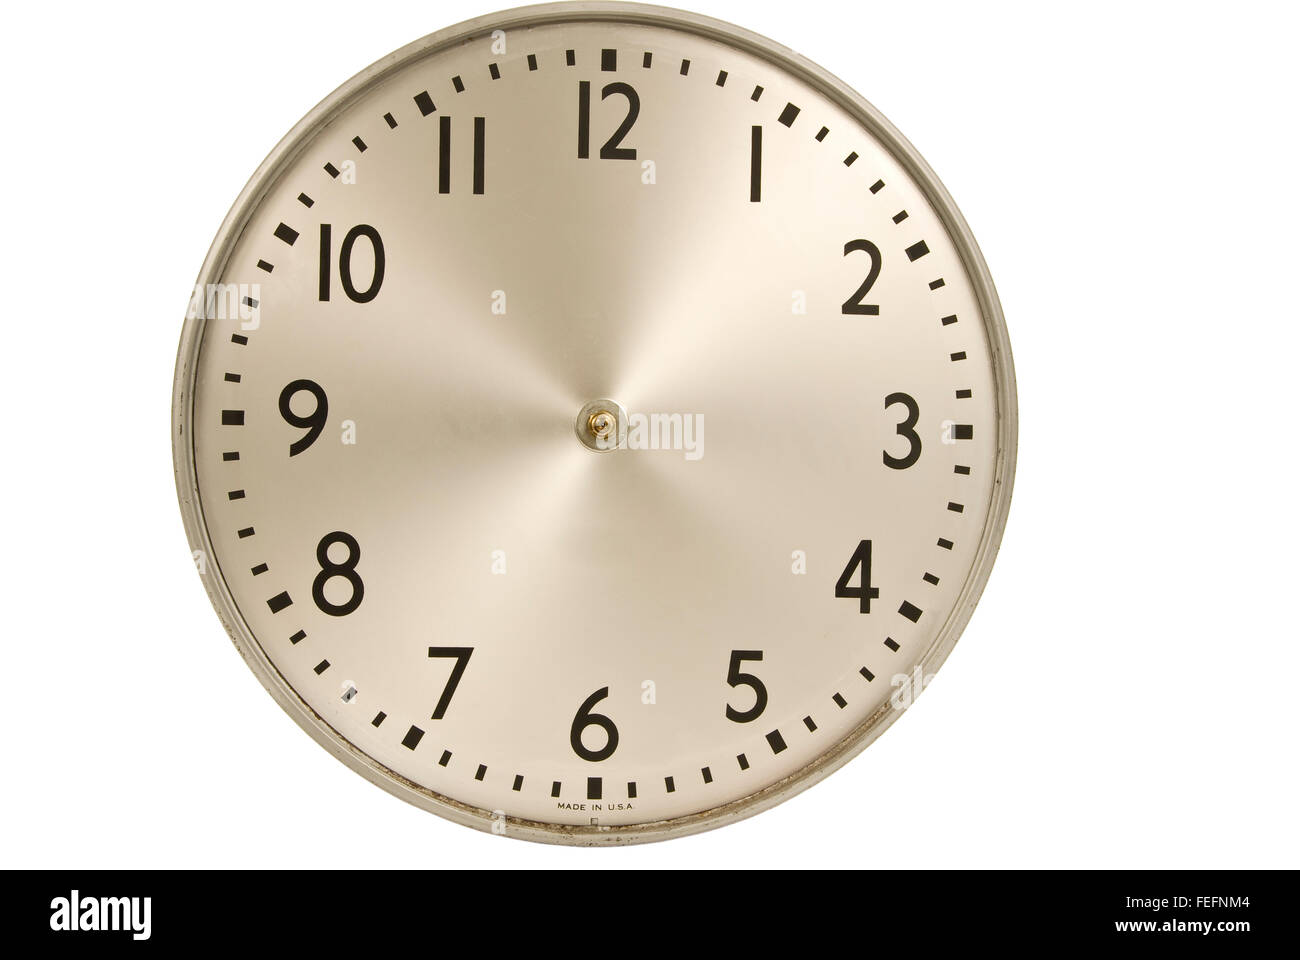 Old Industrial Wall Clock Without Hands - Stock Image